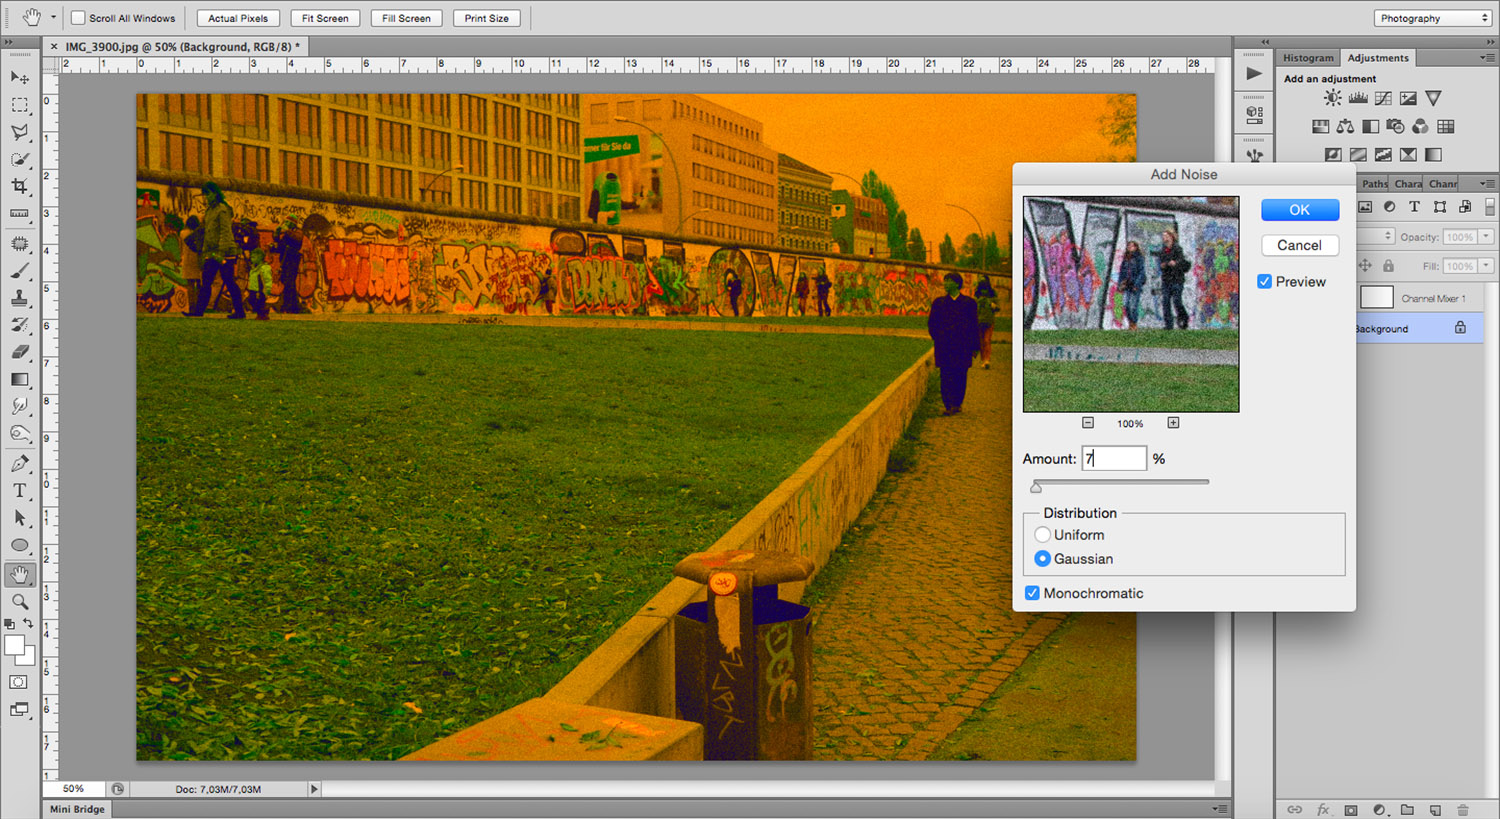 Adding Noise - How To Mimic a Cross-Processing Effect in Photoshop